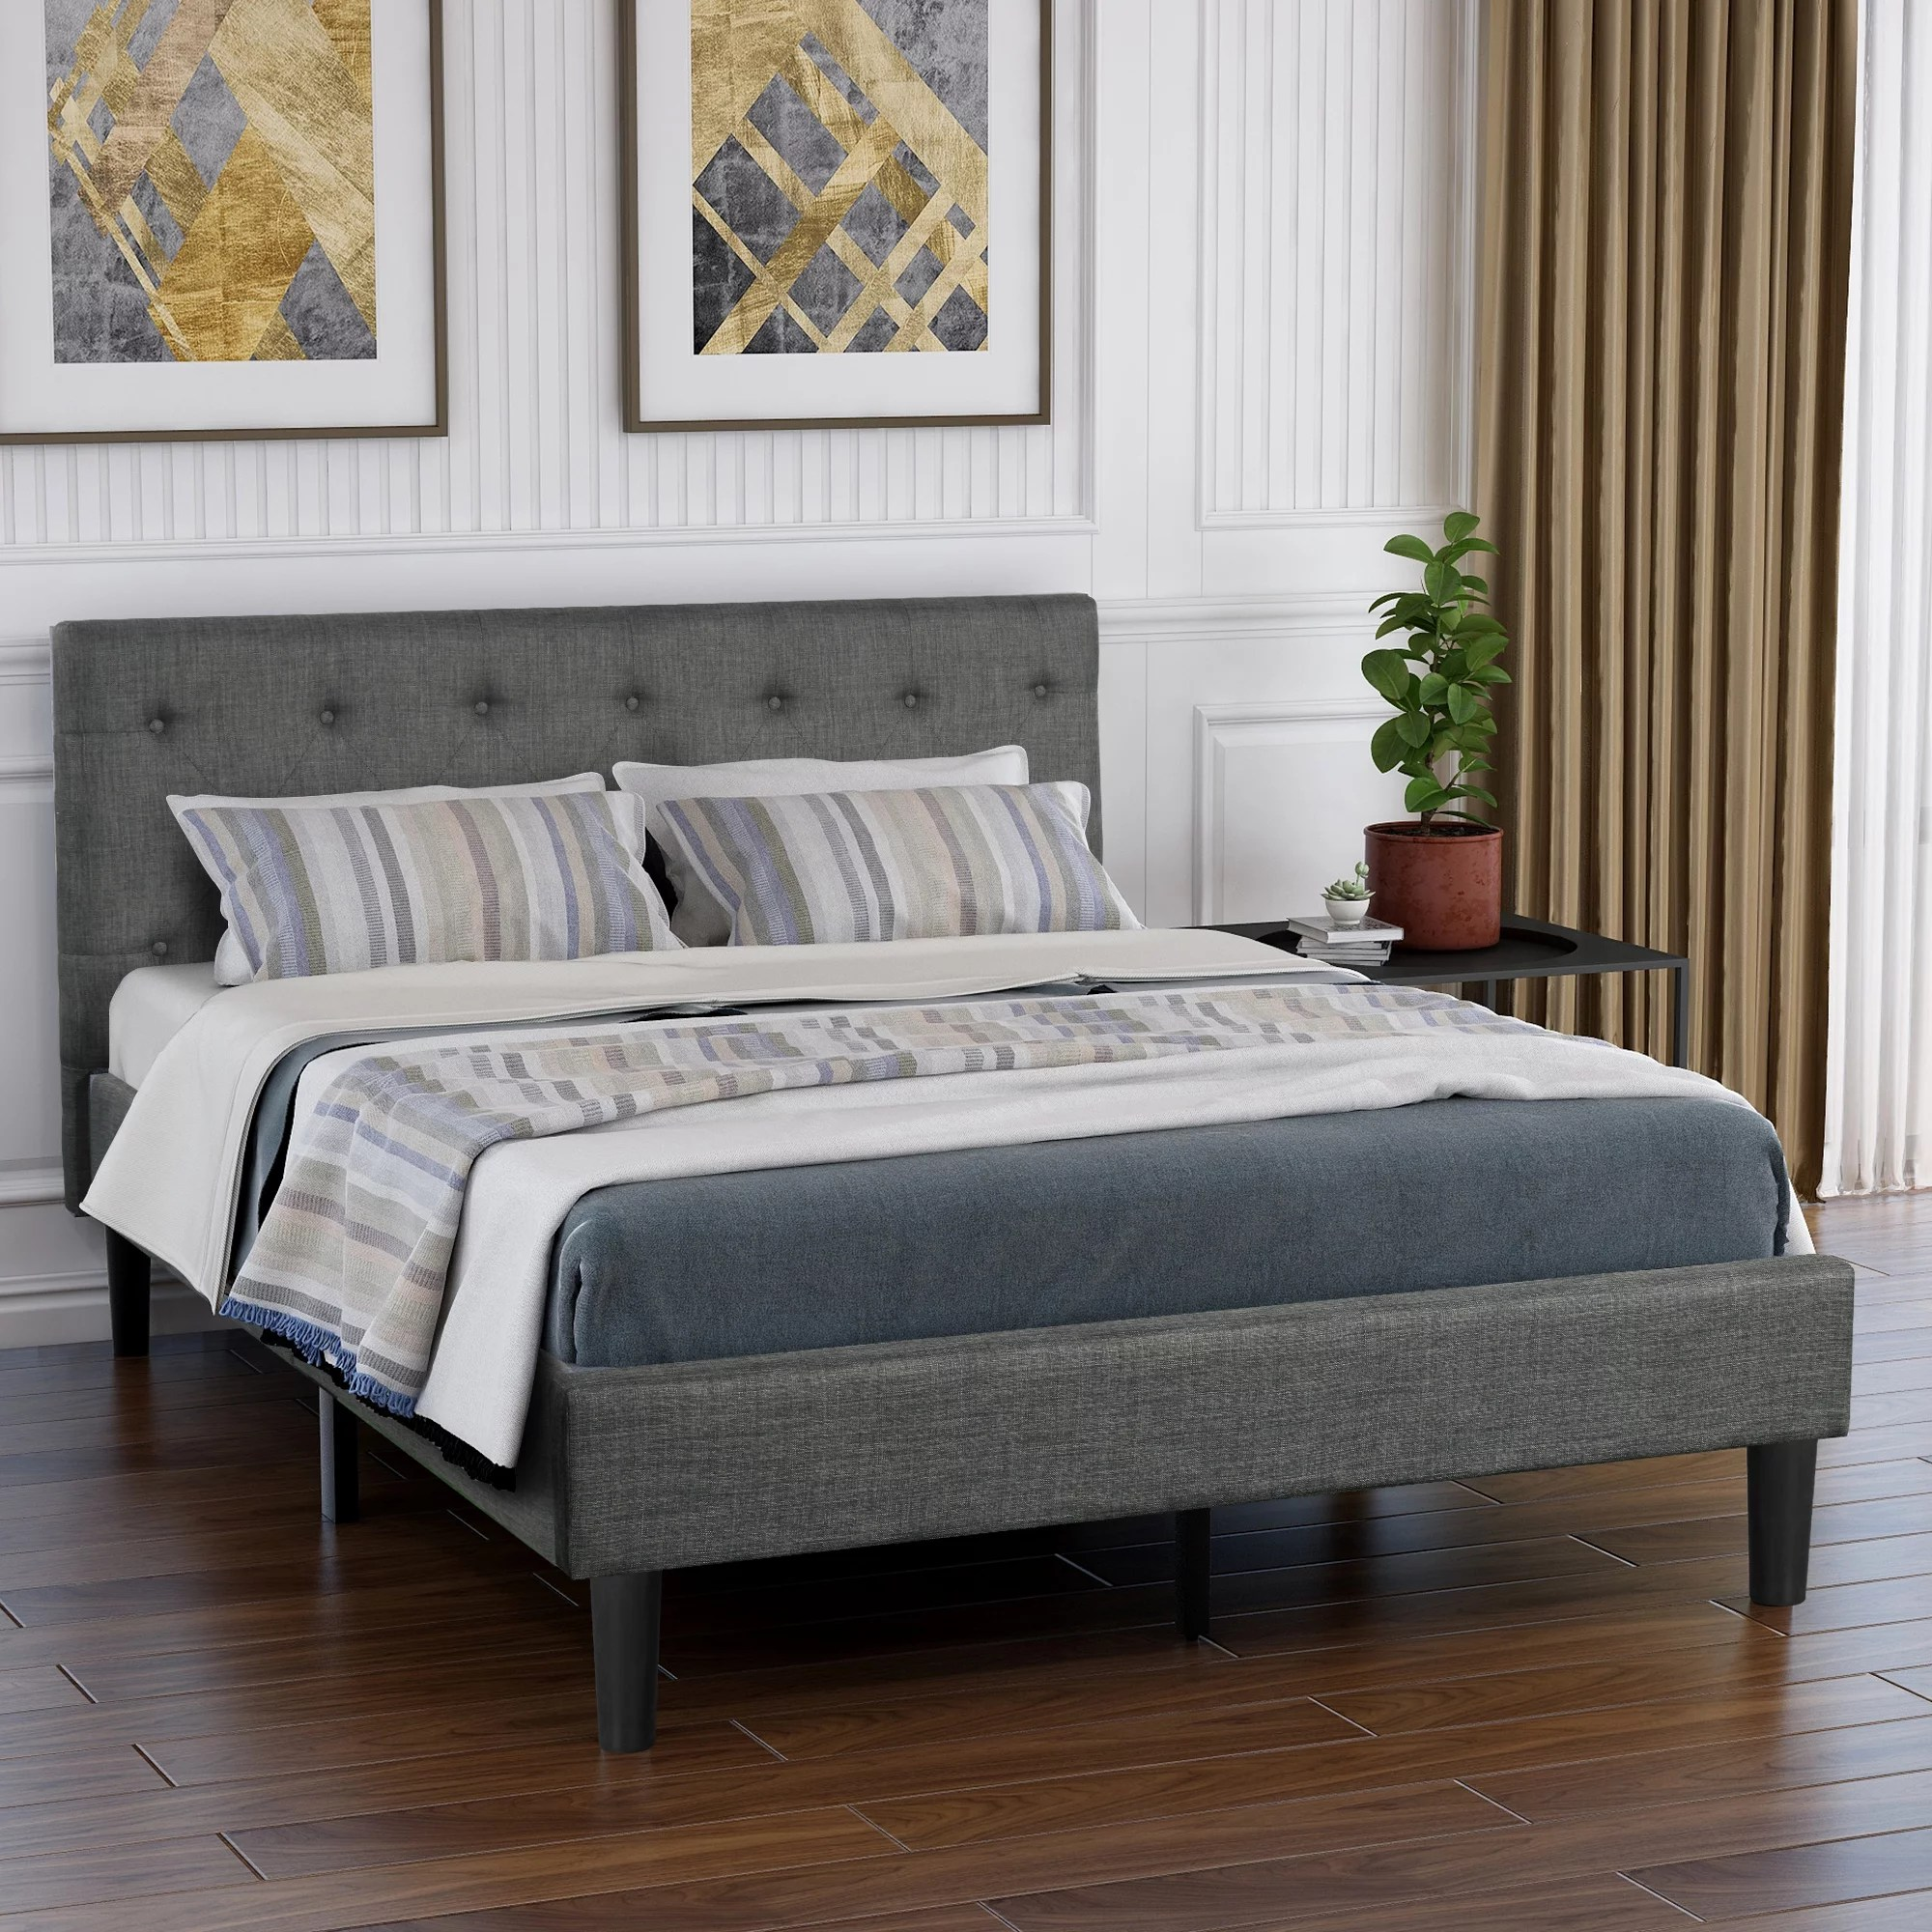 clearance queen bed frame no box spring needed 2020 on walmart bedroom furniture clearance id=30415